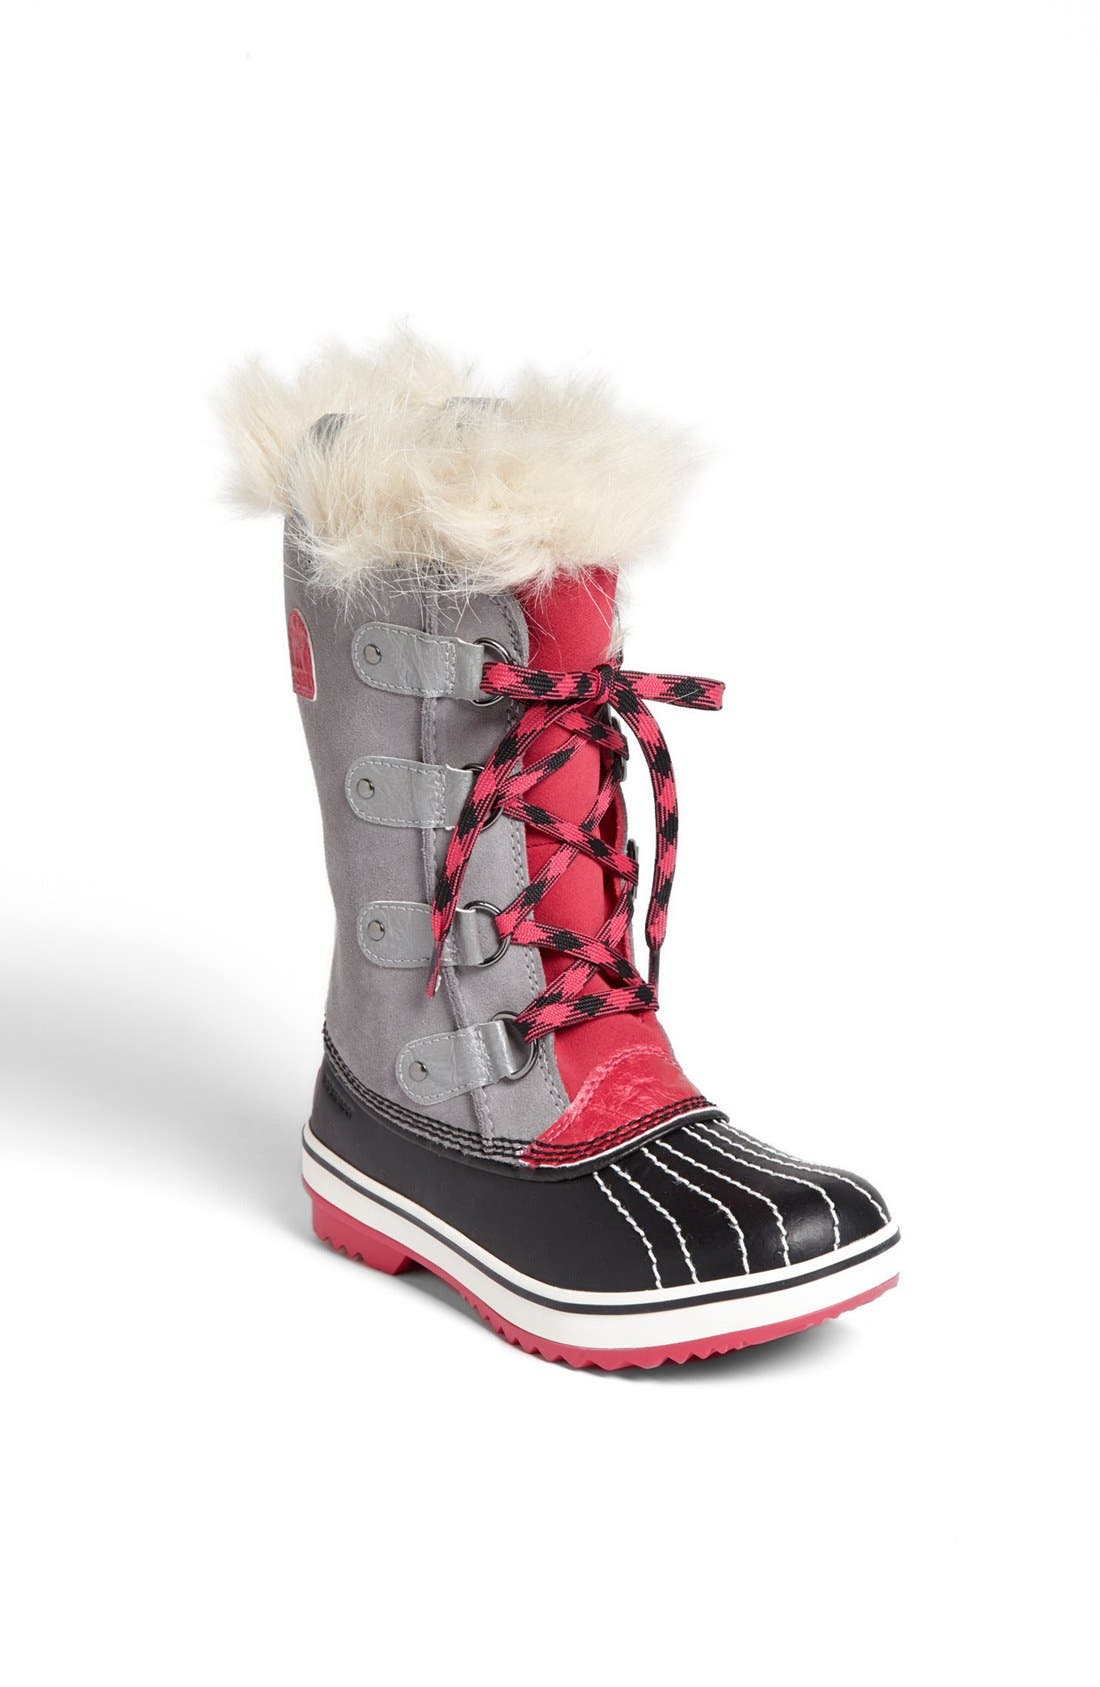 Main Image - SOREL 'Tofino' Waterproof Snow Boot (Little Kid & Big Kid)